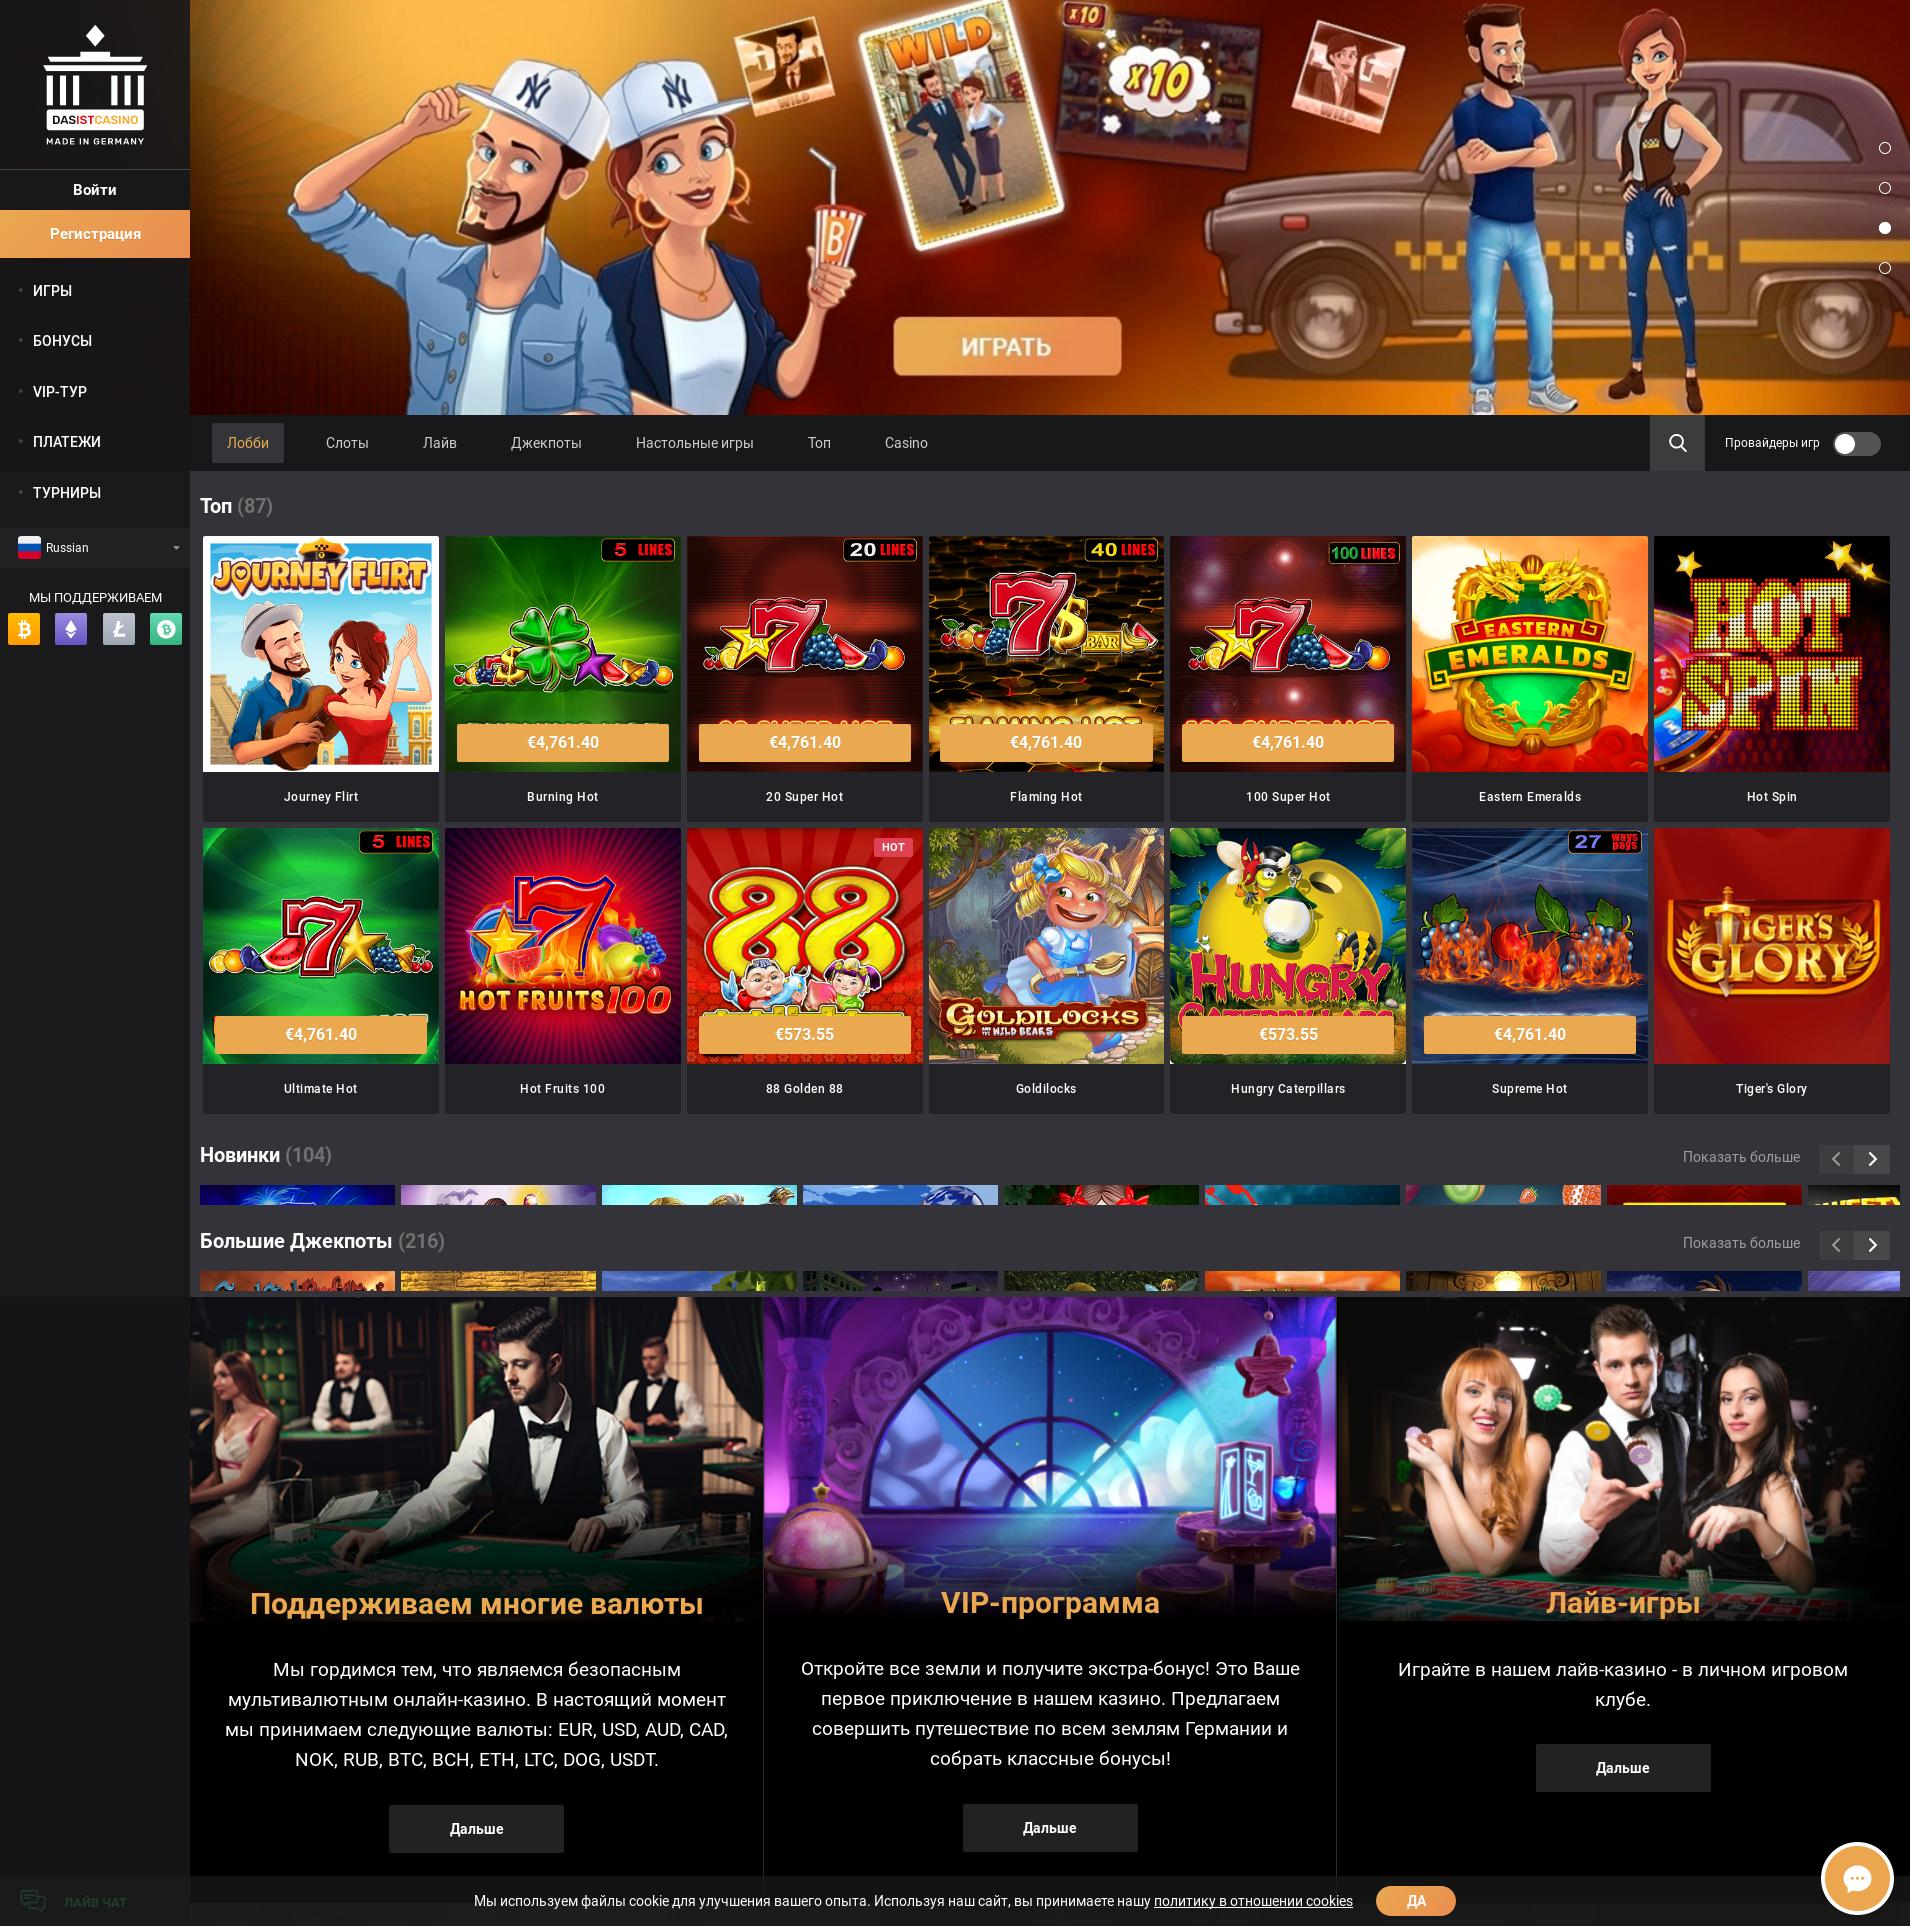 Casino screen Lobby 2019-10-21 for Russian Federation